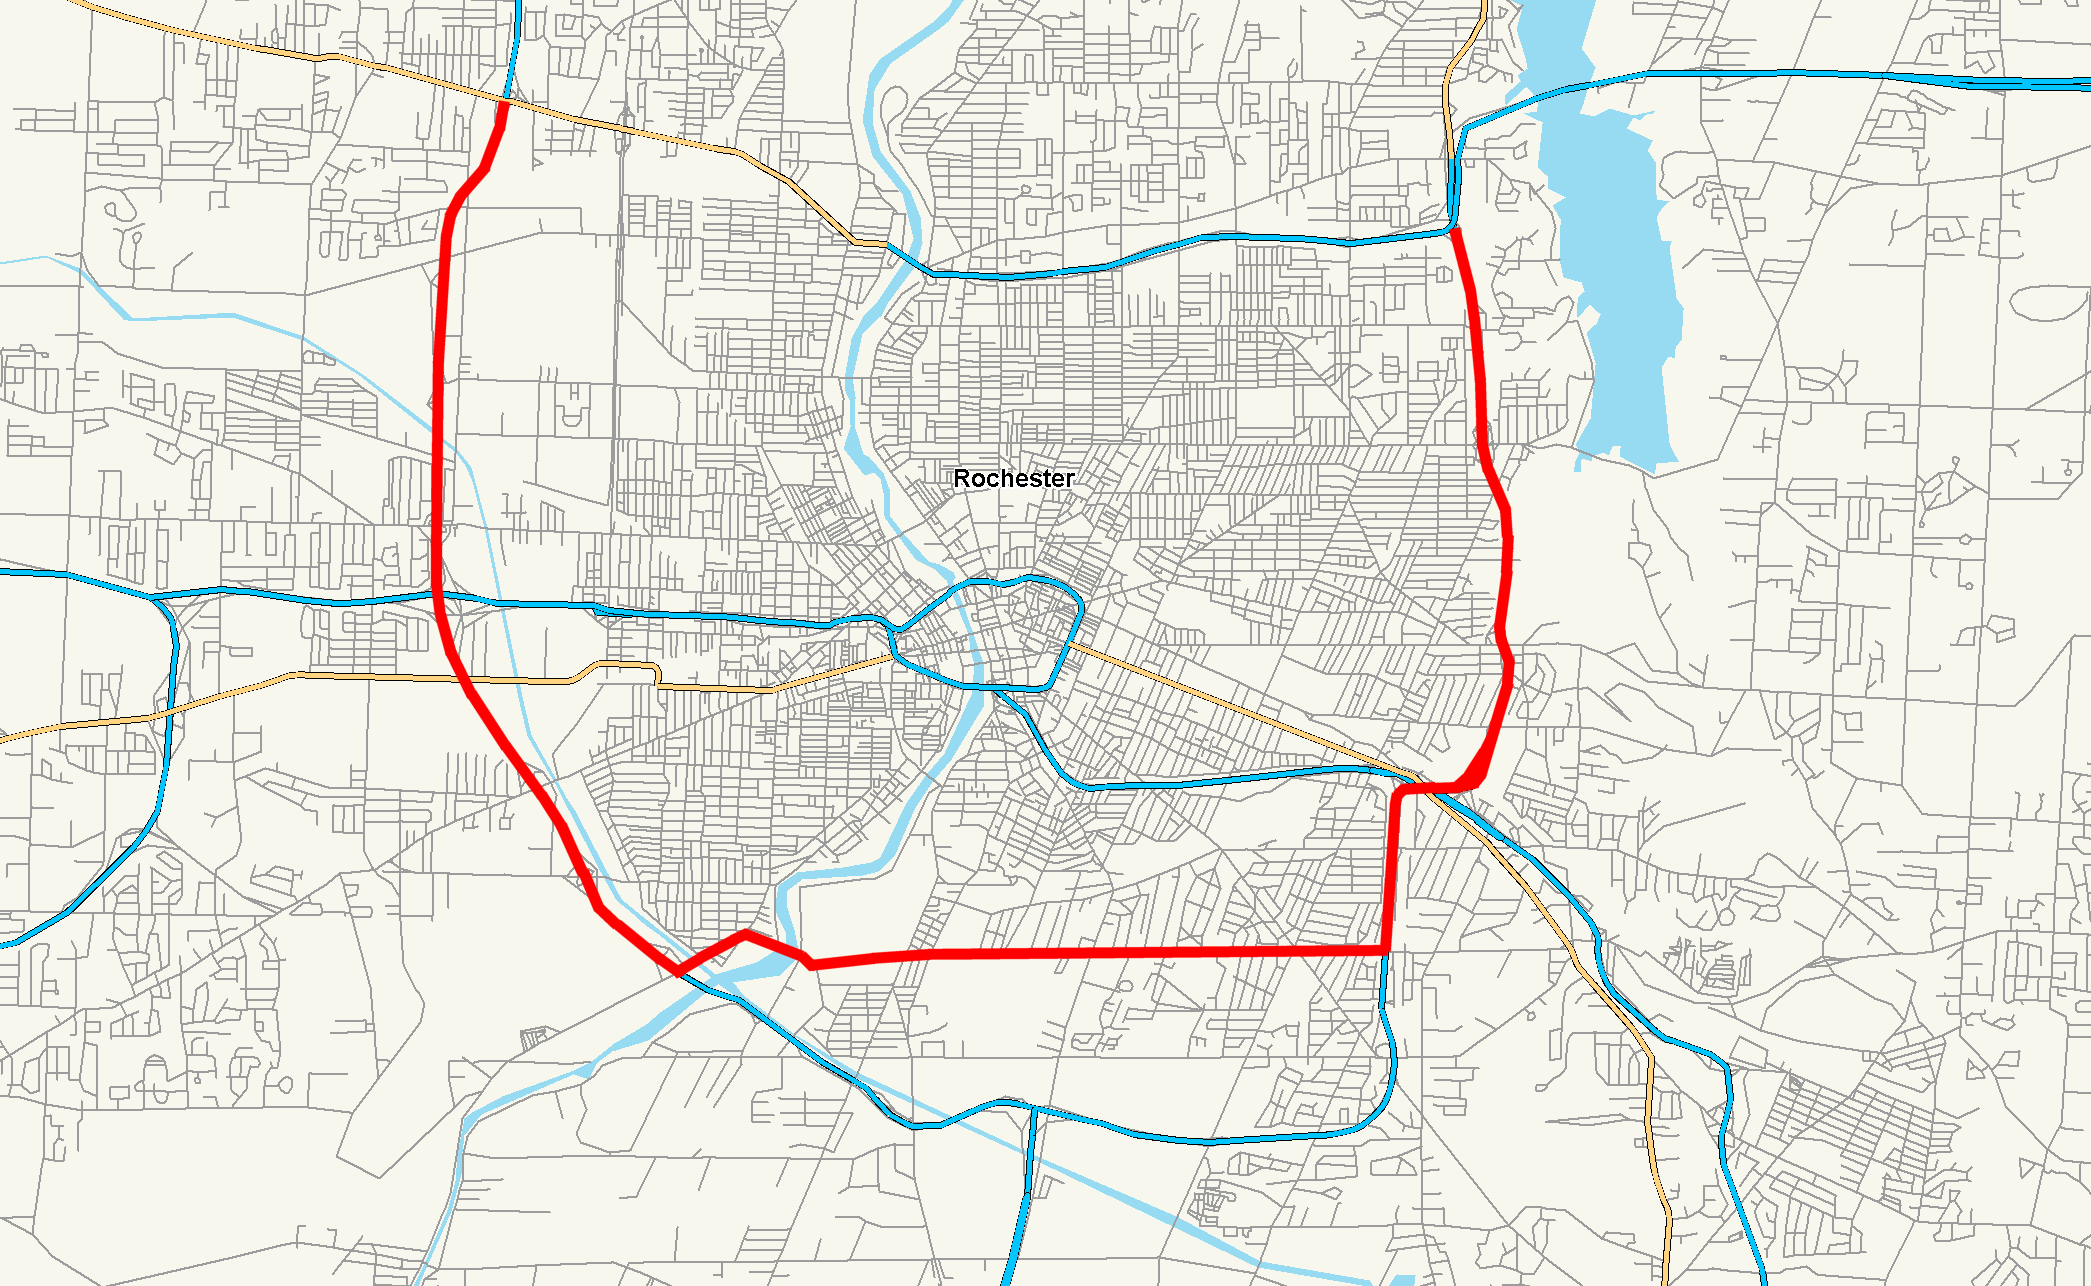 Datei:New York State Route 47 (1980 Street) map.png – Wikipedia